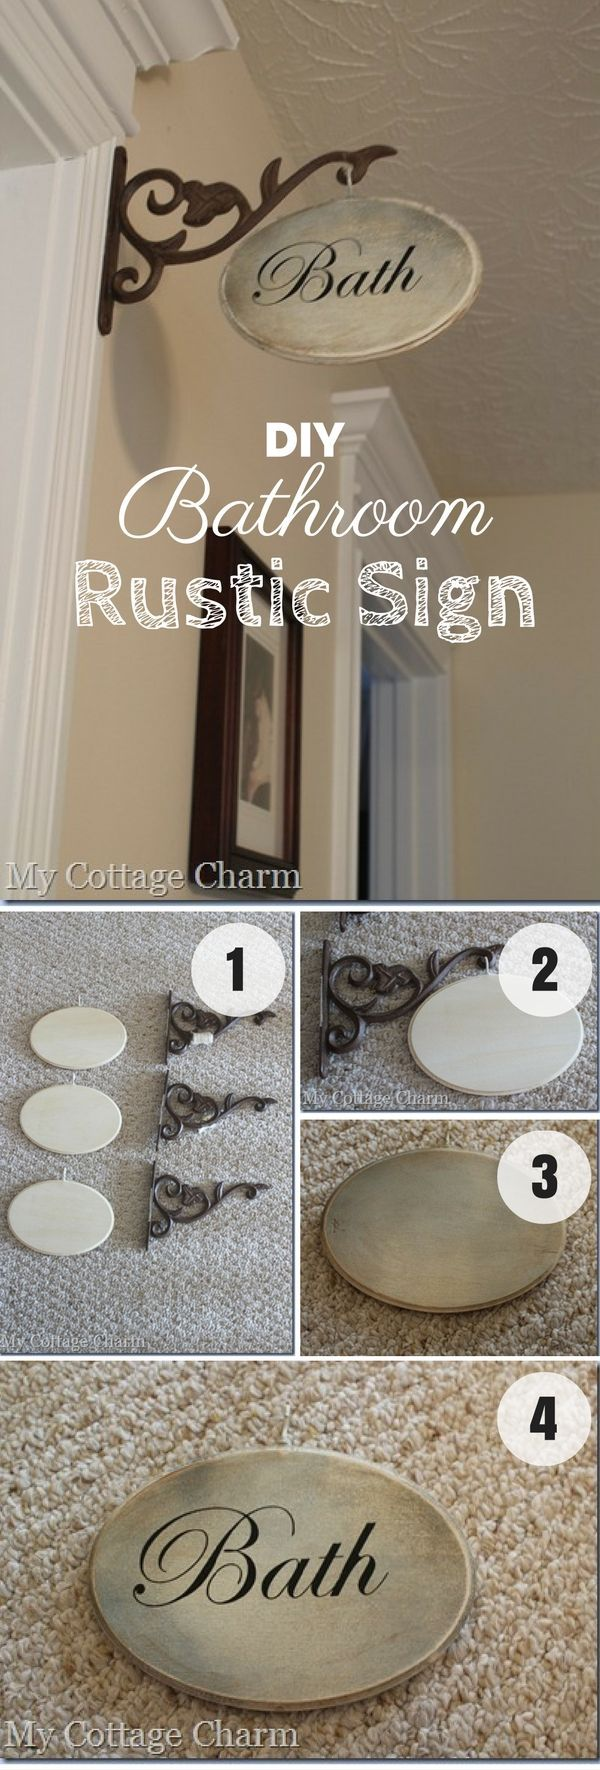 Check out this easy idea on how to make a #DIY #rustic bathroom sign #homedecor #budget #crafts @istandarddesign